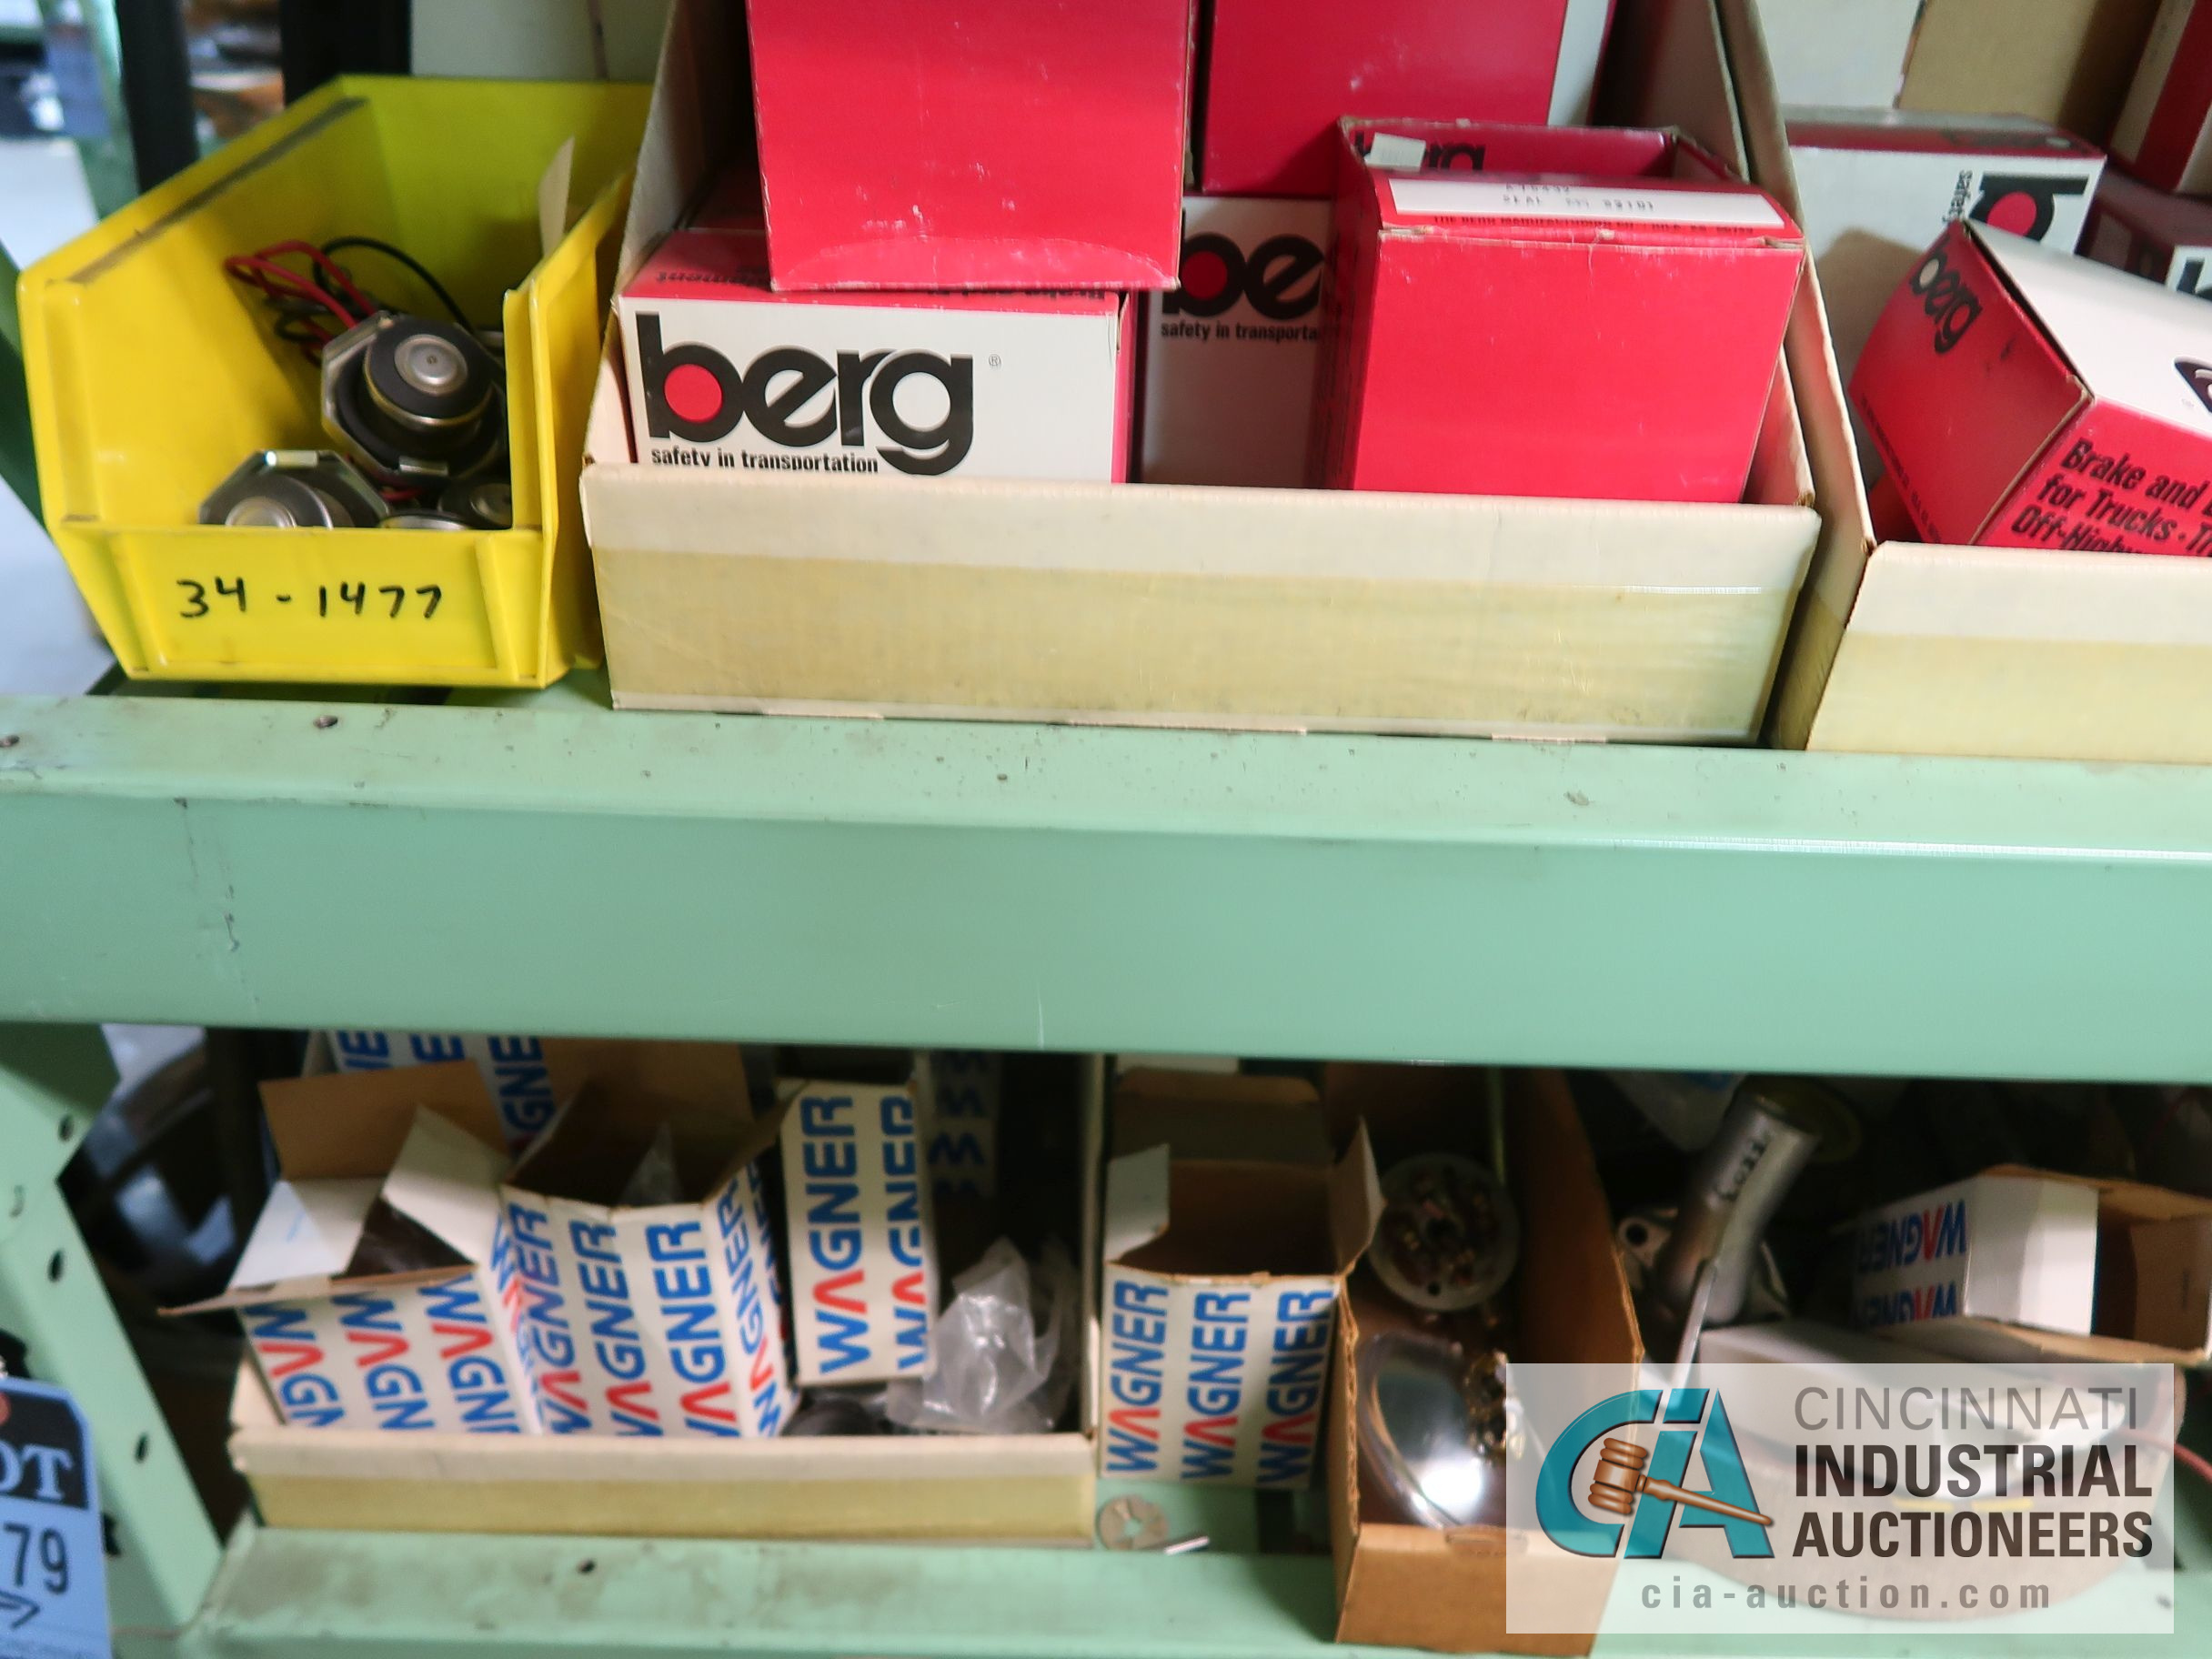 CONTENTS OF (5) RACKS INCLUDING MISCELLANEOUS AUTOMOTIVE PARTS, LIGHTS, FILTERS, ENGINE PARTS, RIMS, - Image 6 of 29